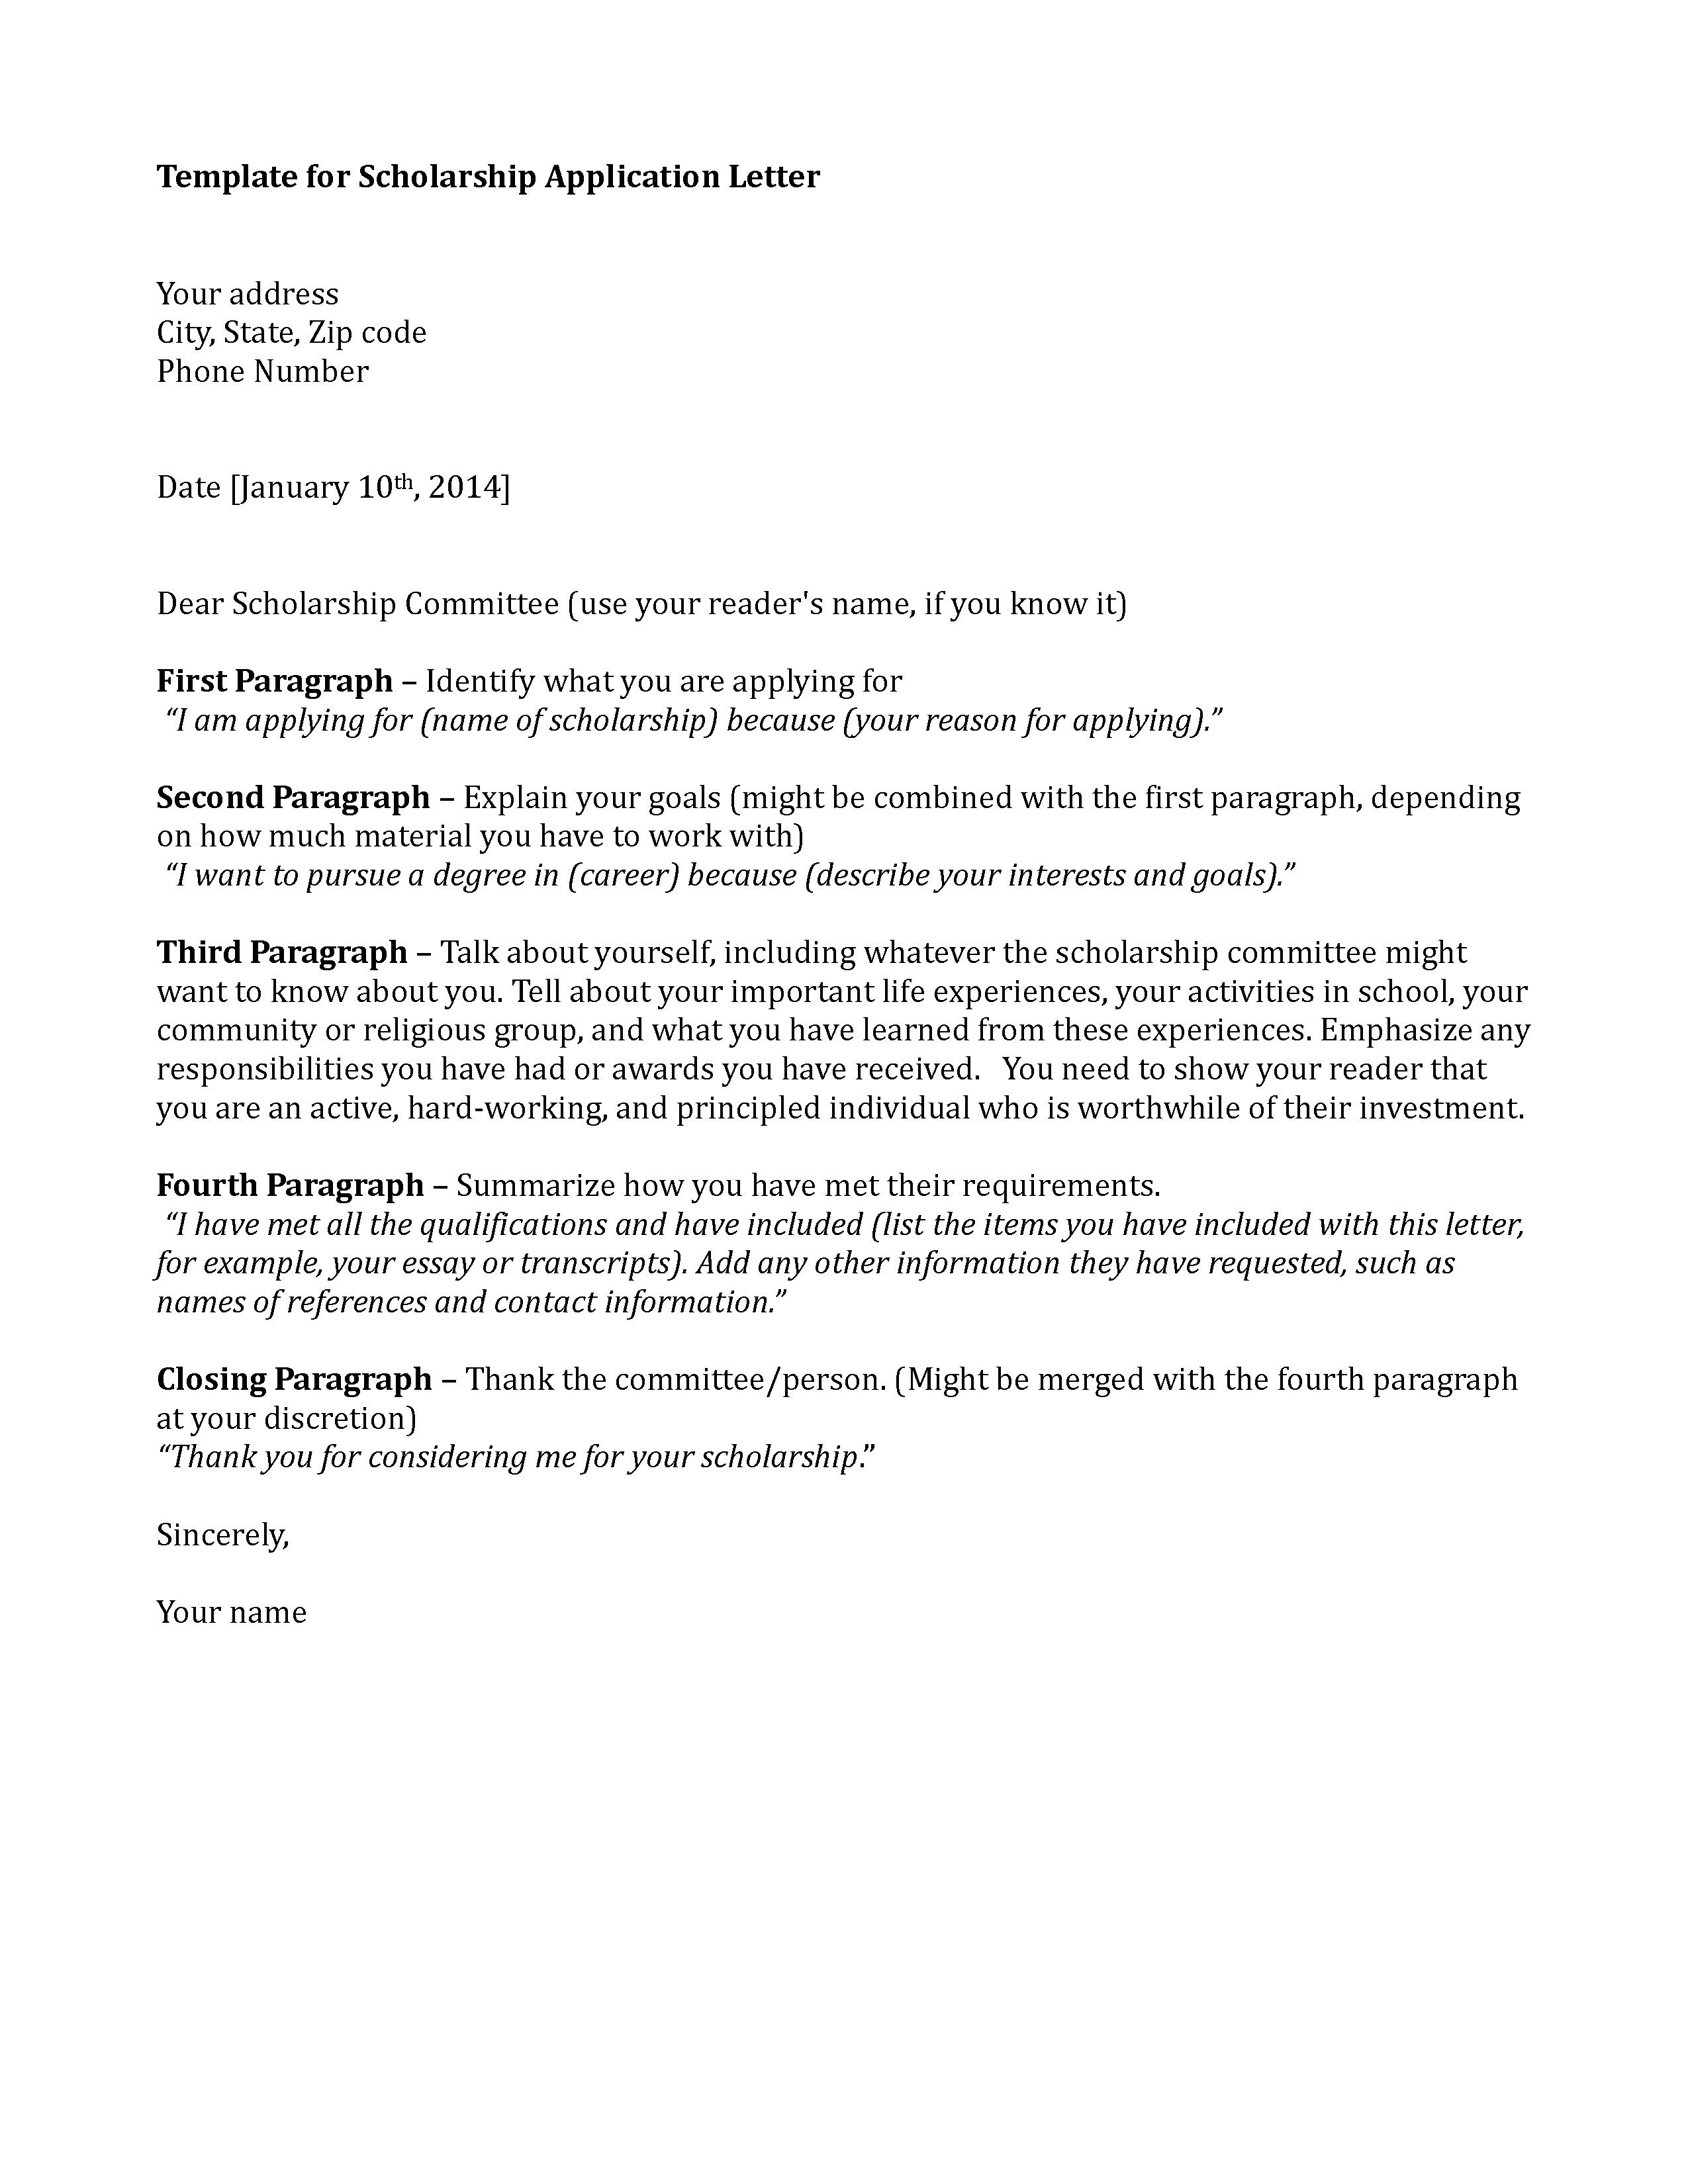 Template Scholarship Application Letter Letters Cover